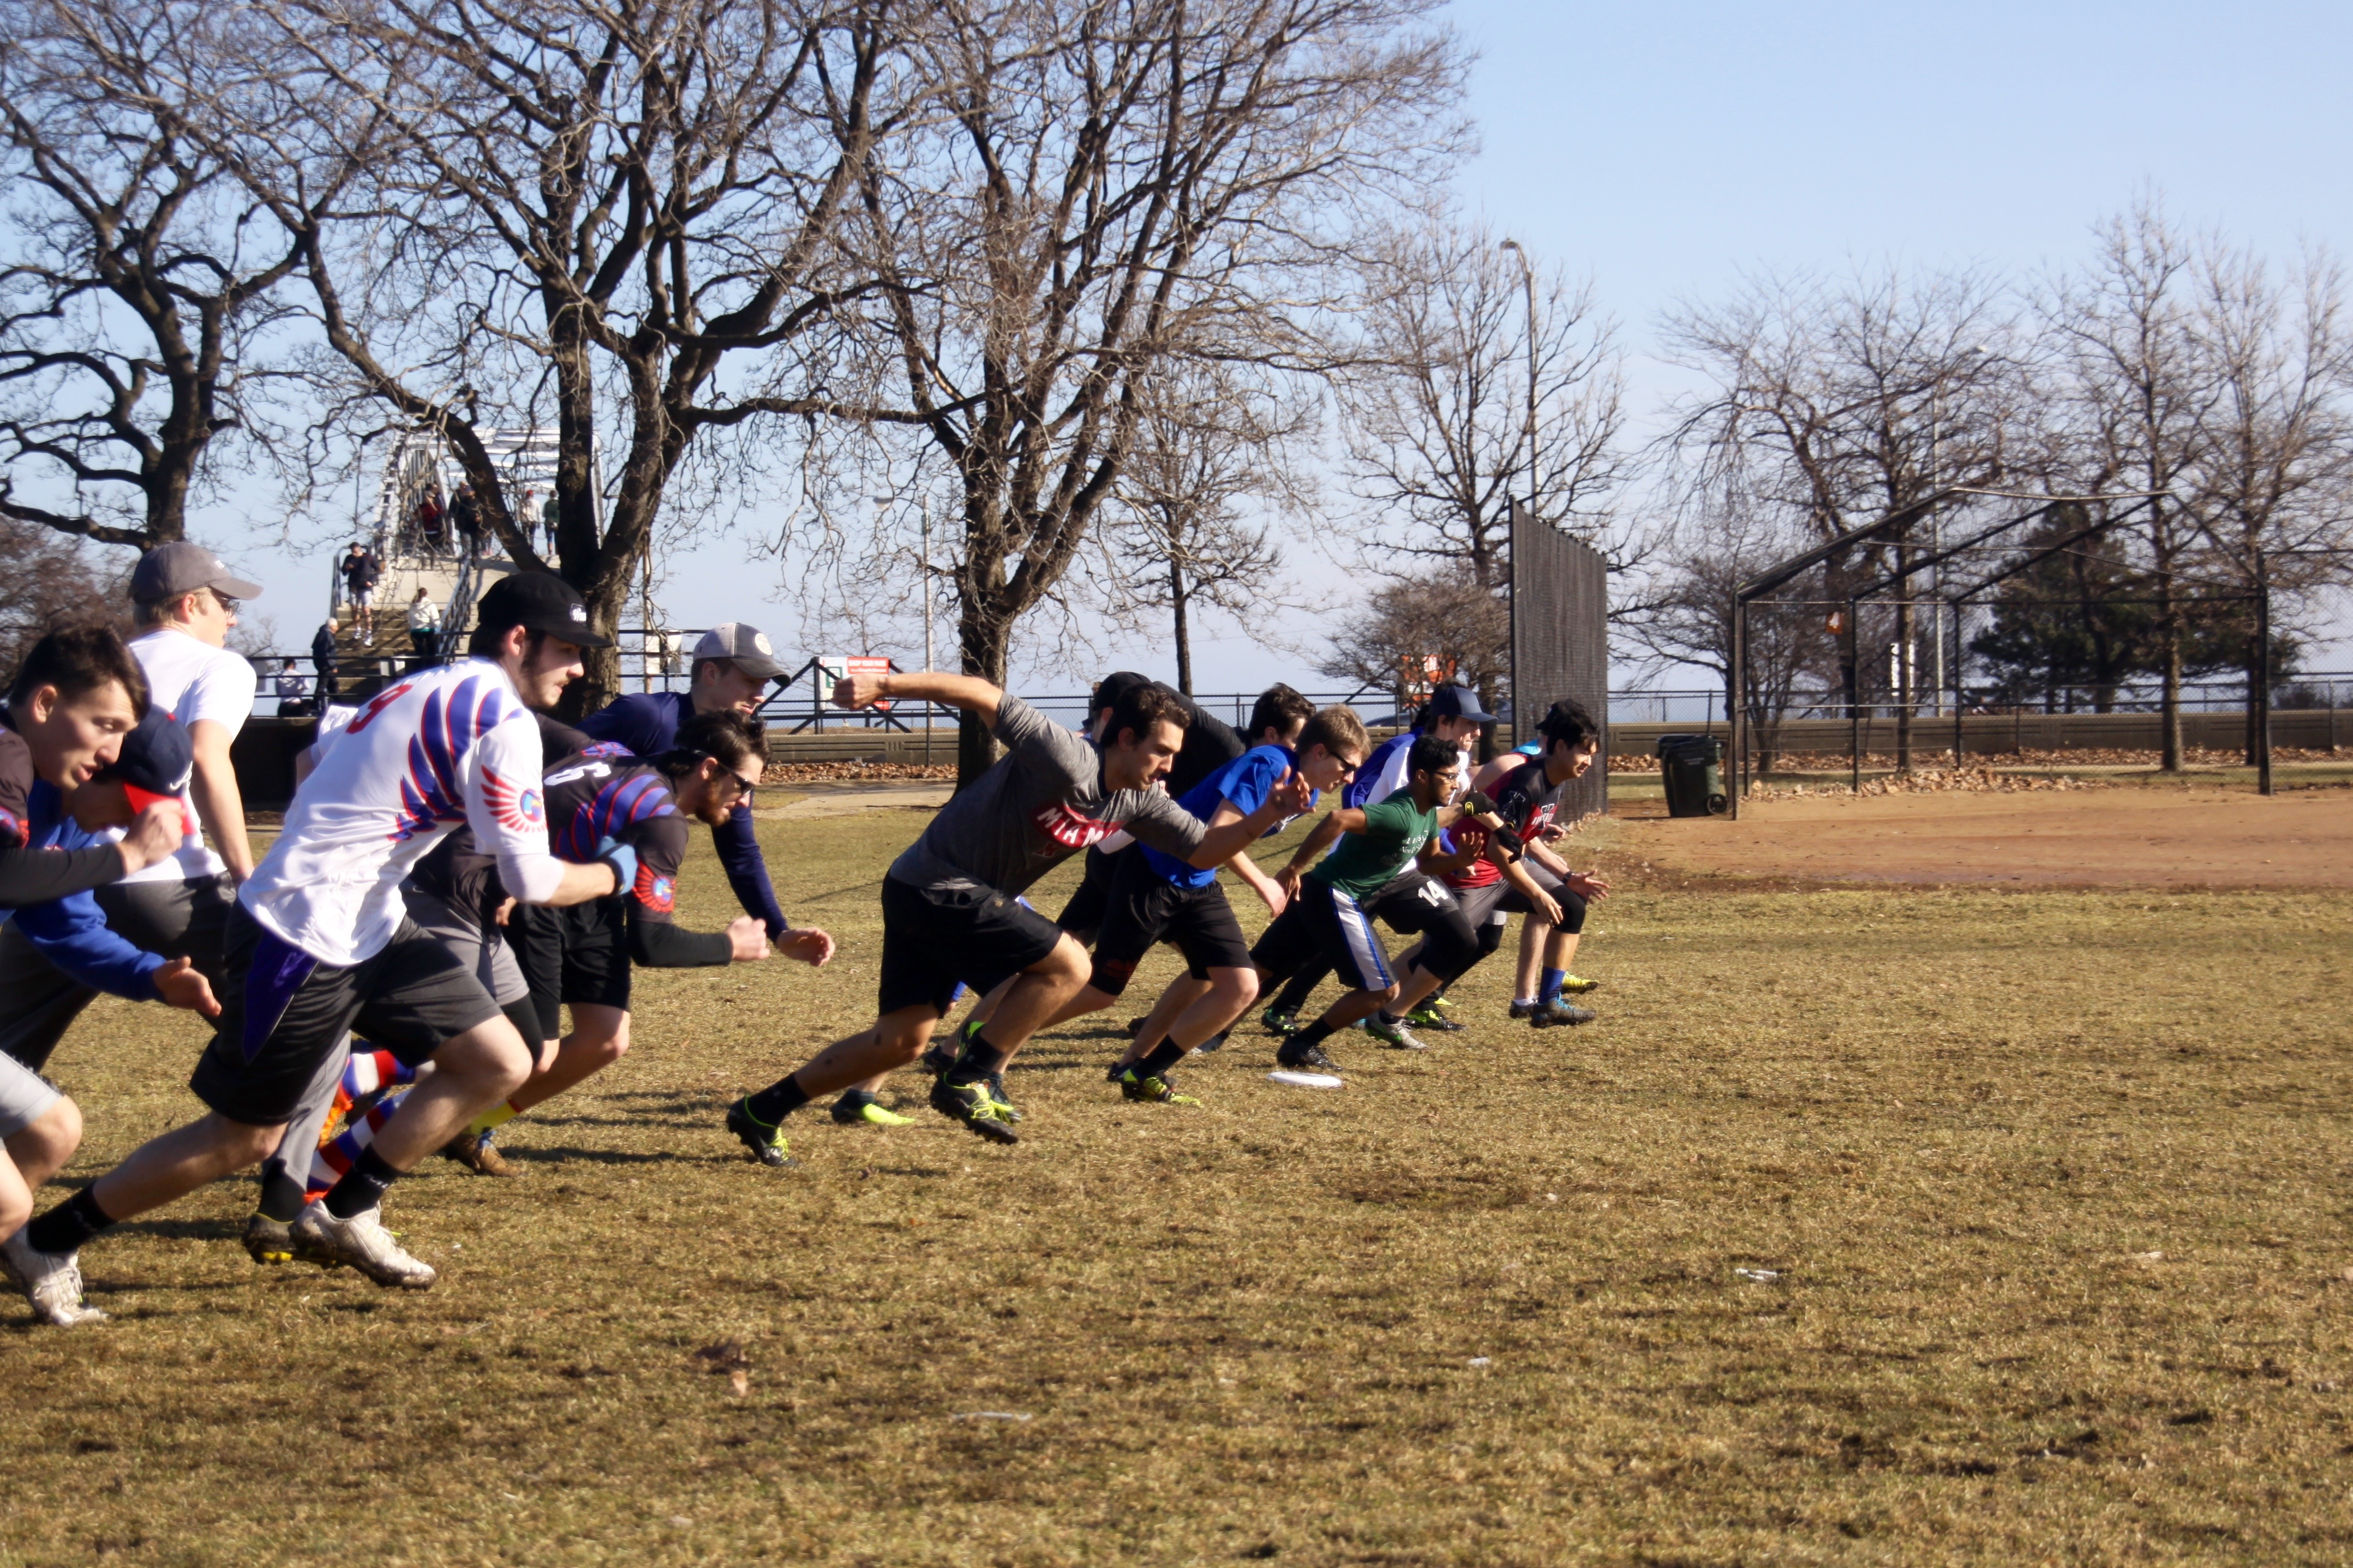 DePaul Ultimate Club members warm up by sprinting short distances during a sunny Saturday morning practice near Lake Michigan on Jan. 21, 2017.